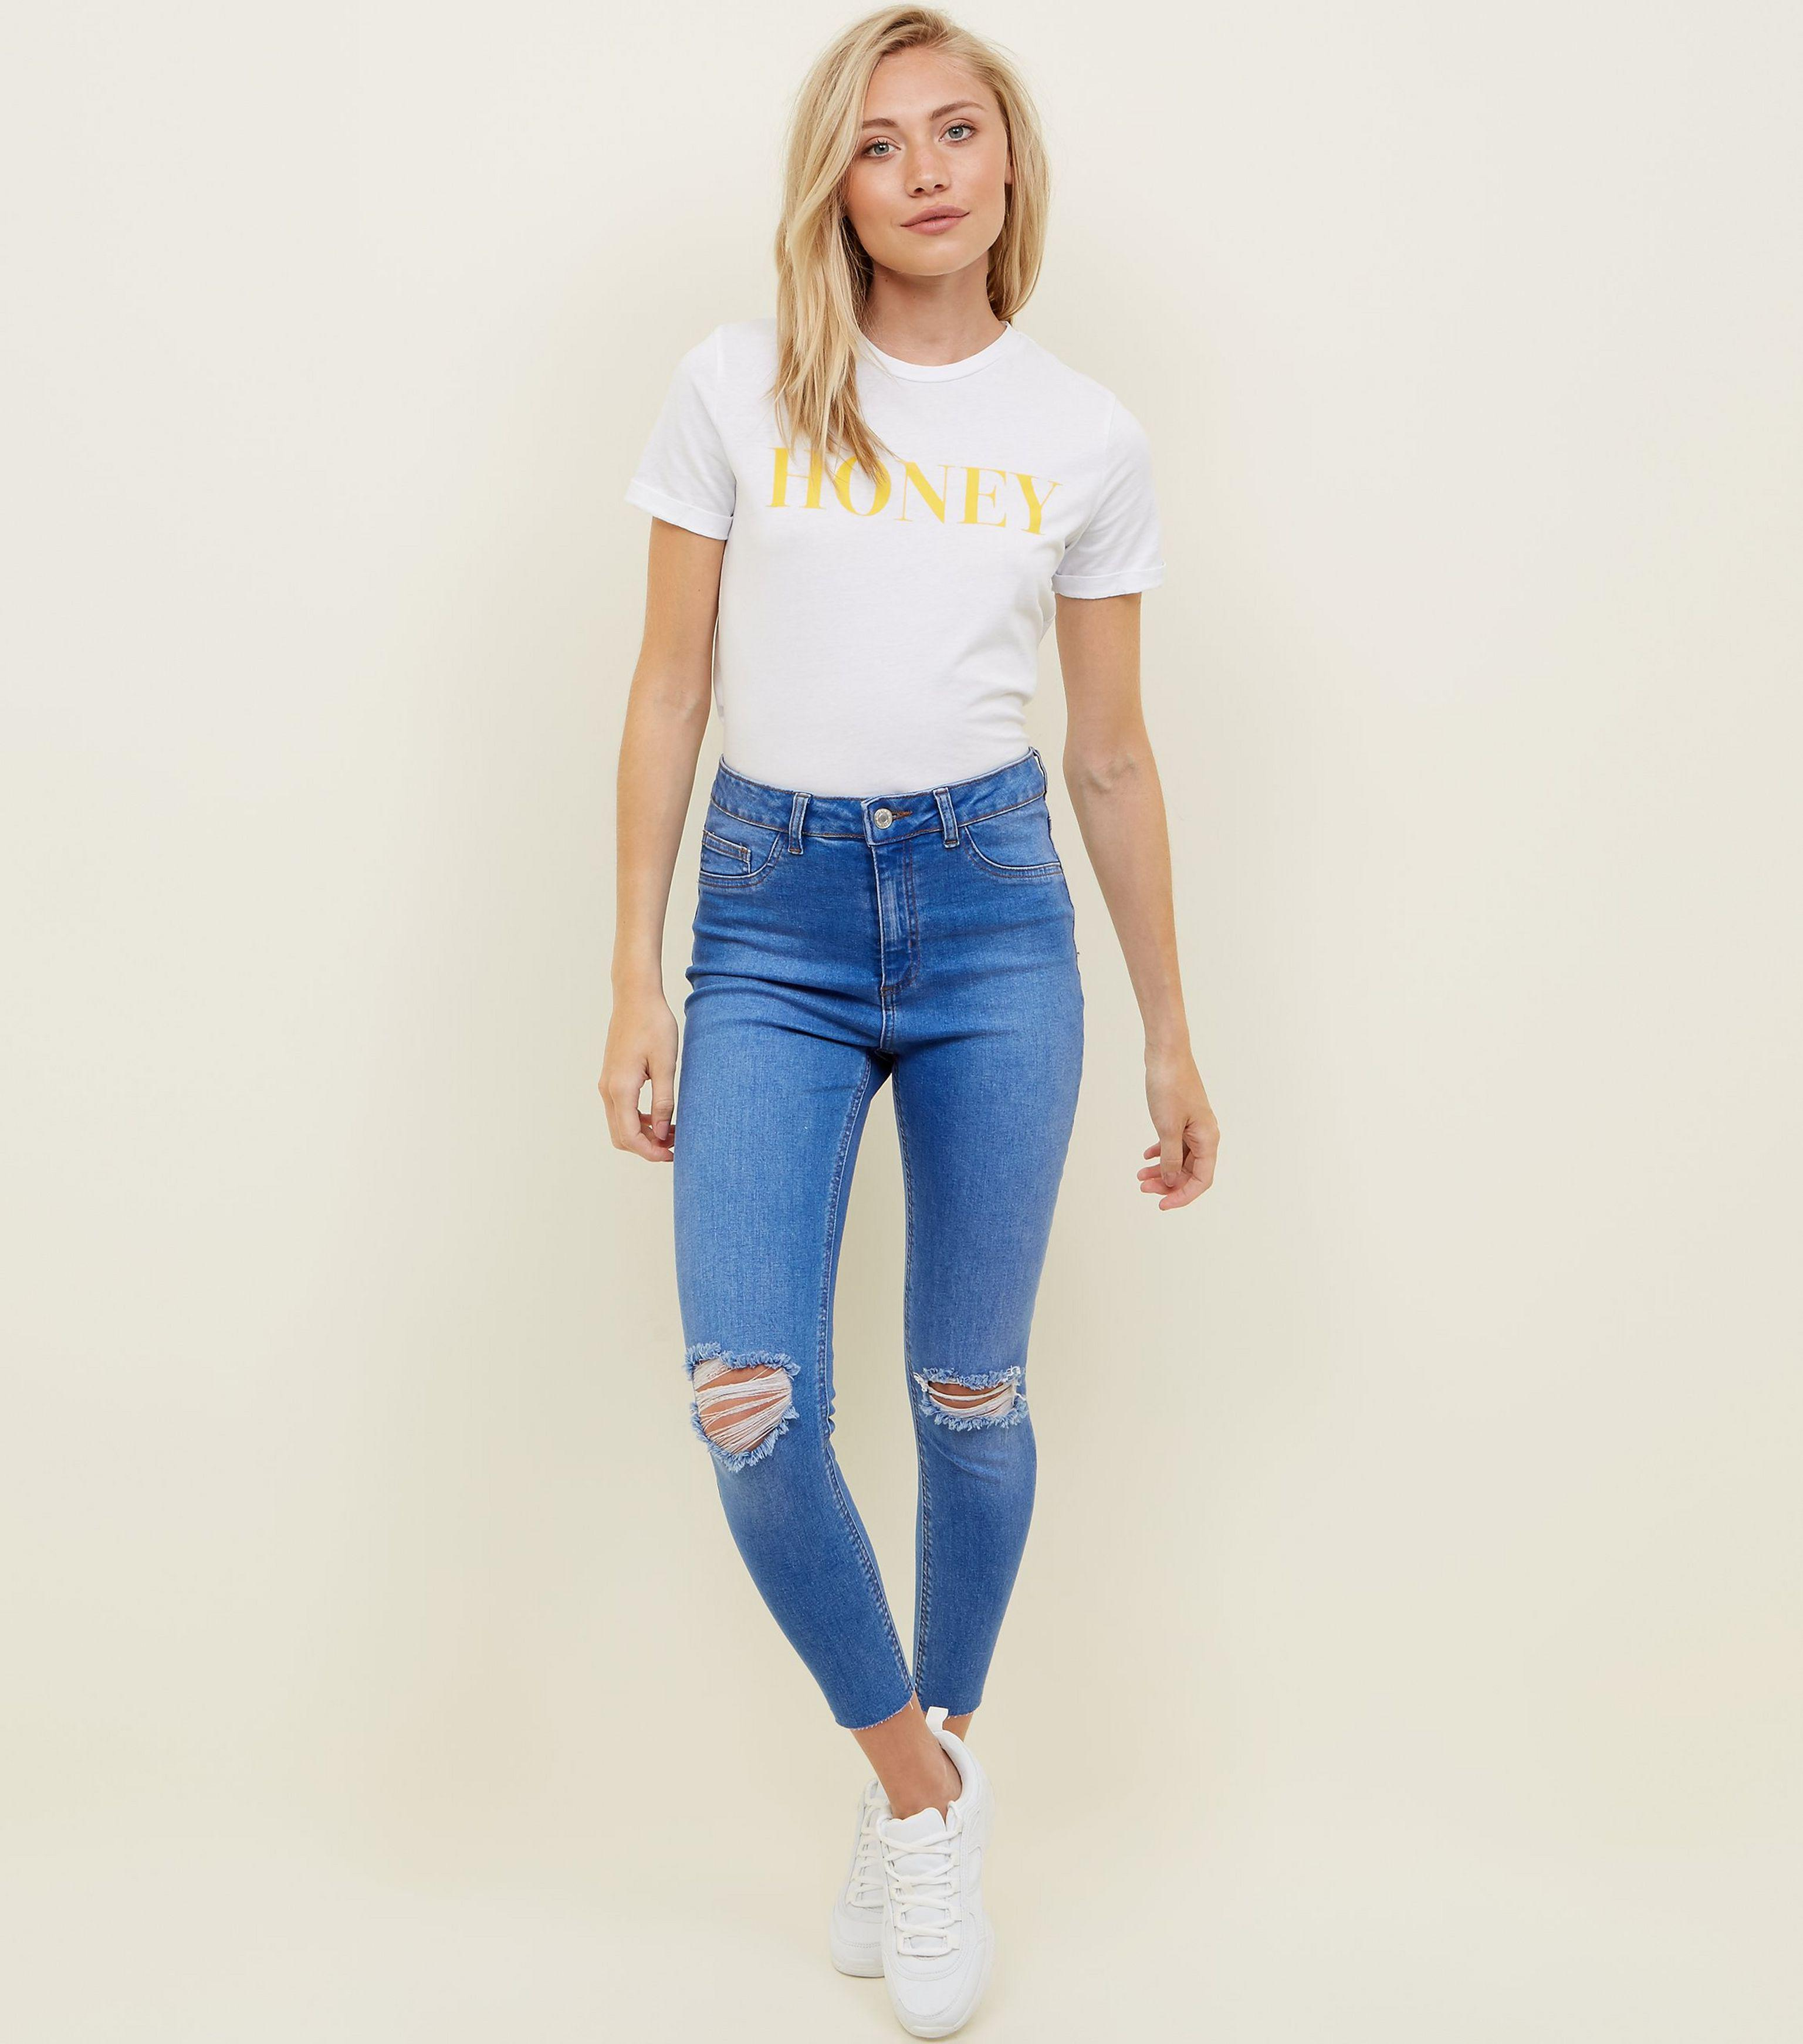 95b93e2045f New Look Petite Bright Blue Ripped High Waist Super Skinny Jeans in ...